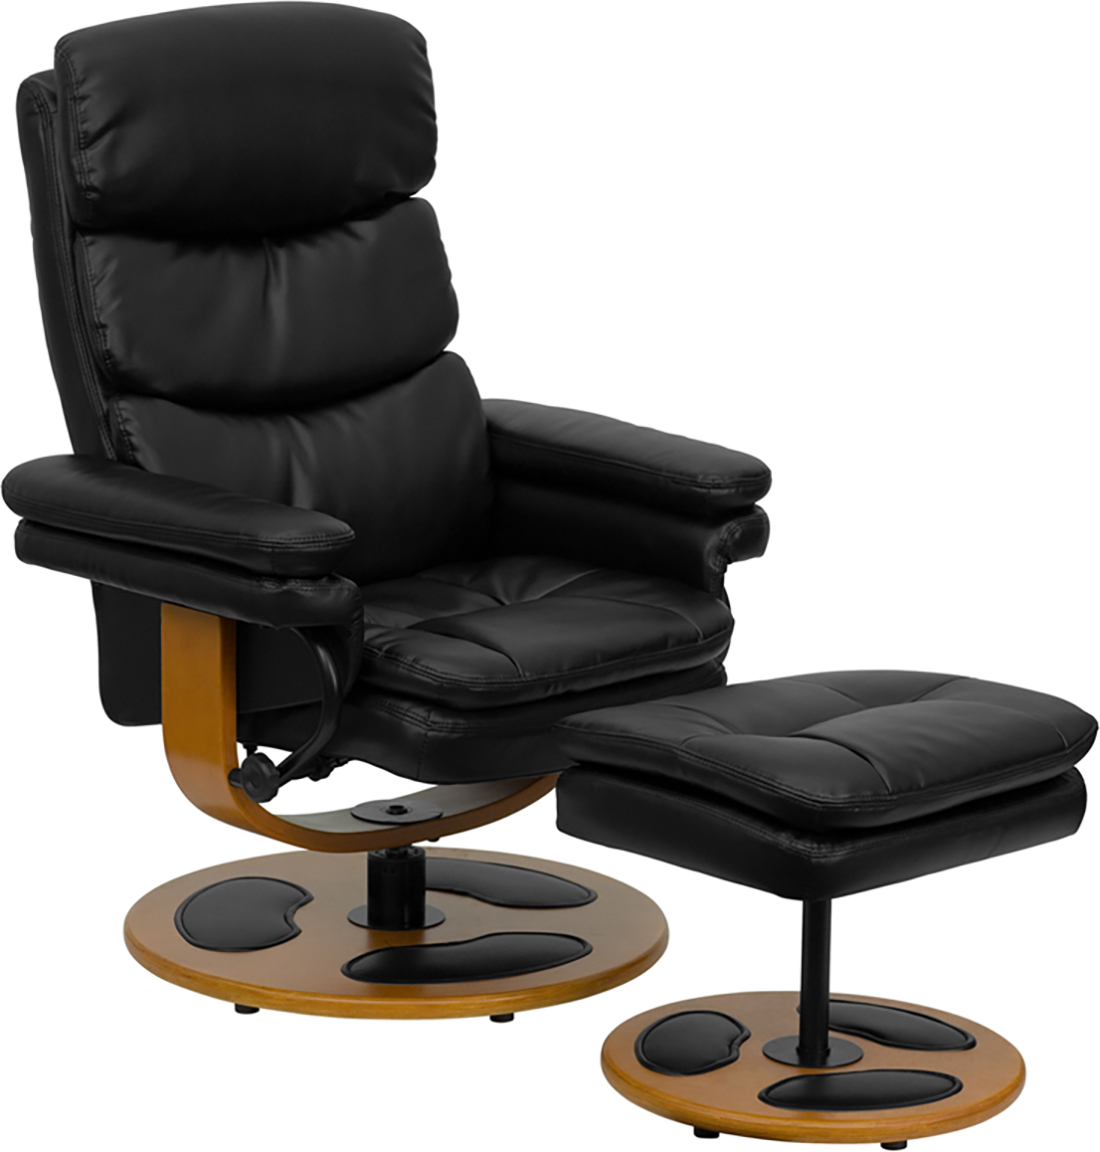 black leather recliner and ottoman with wood base